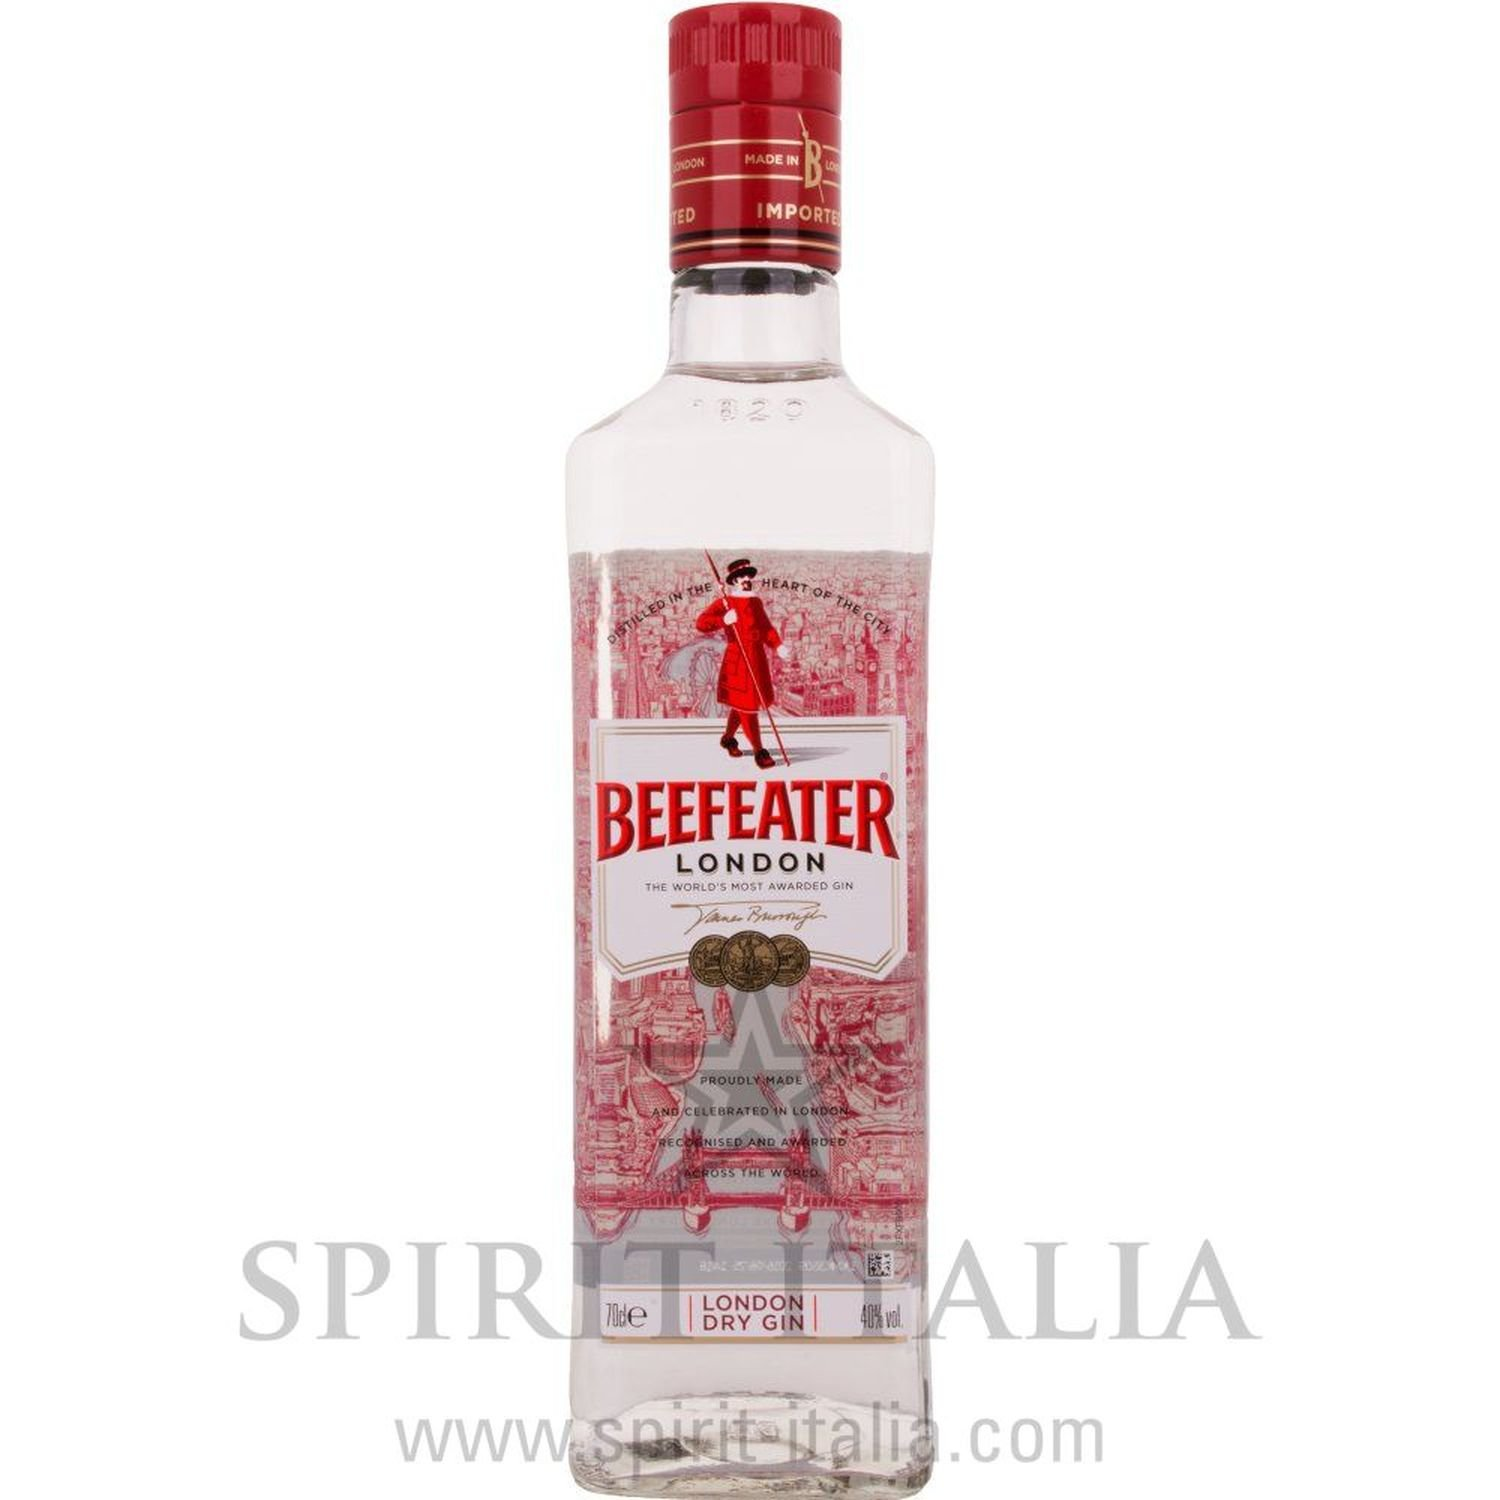 Beefeater London Dry Gin 4000 07 L Amazoncouk Beer Wine